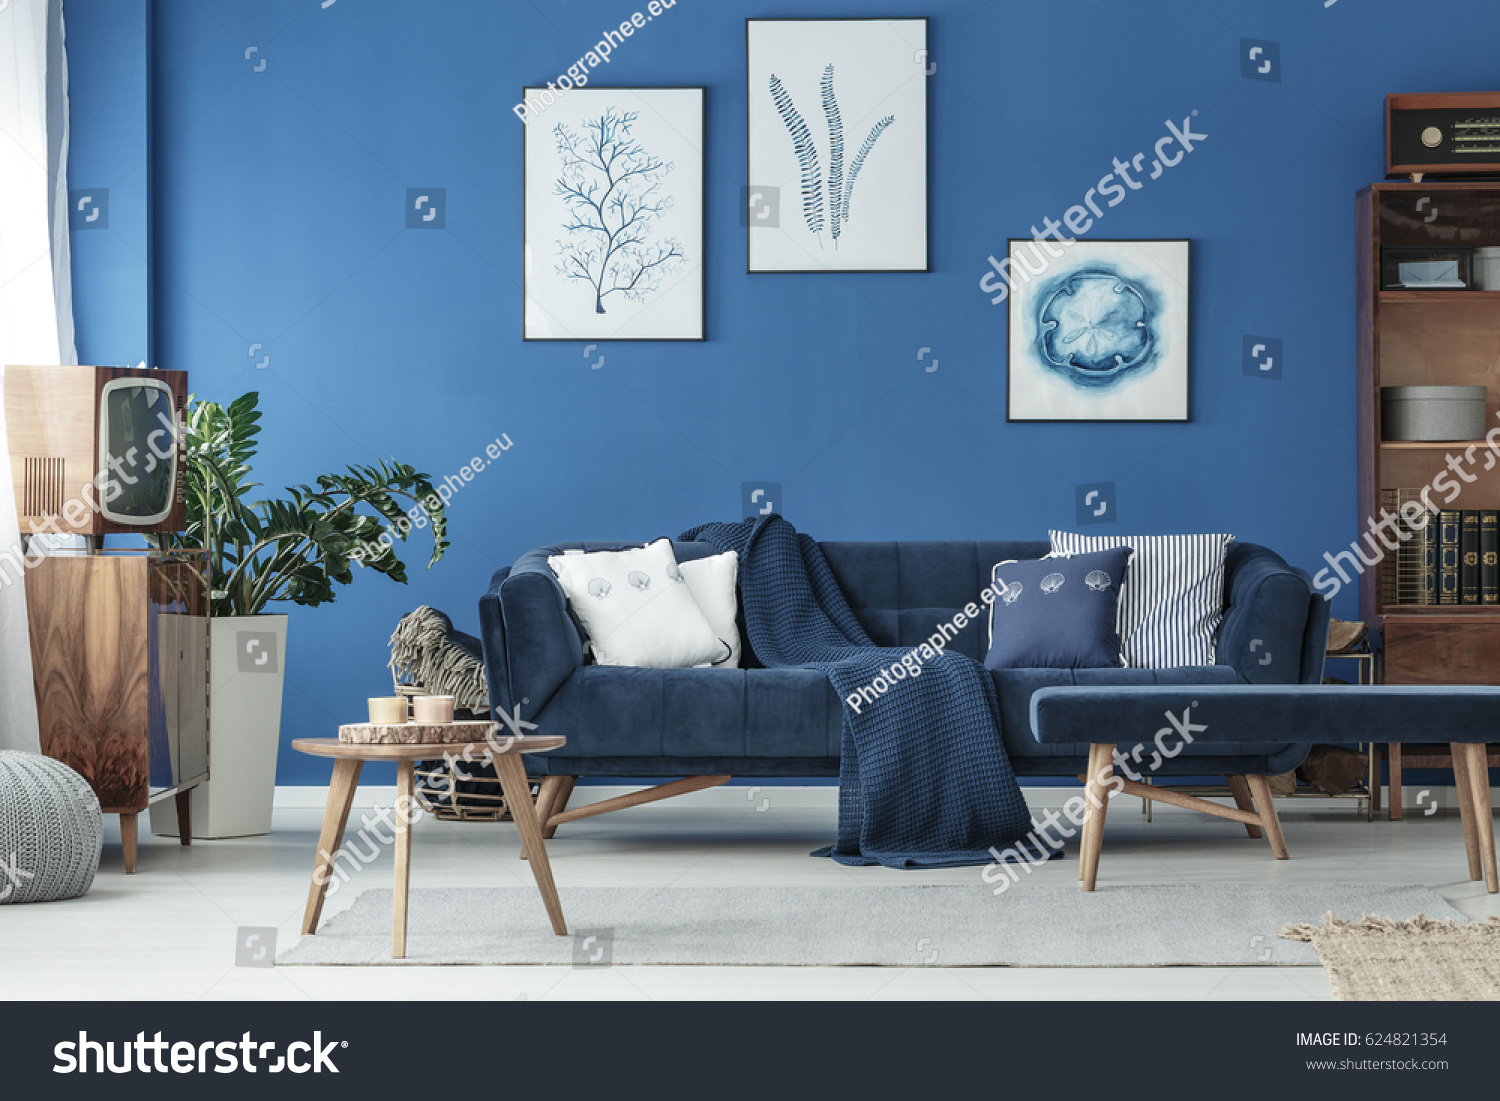 navy sofa living room. Cyan living room with navy sofa and wooden decoration Living Room Navy Sofa Wooden Stock Photo 624821354  Shutterstock